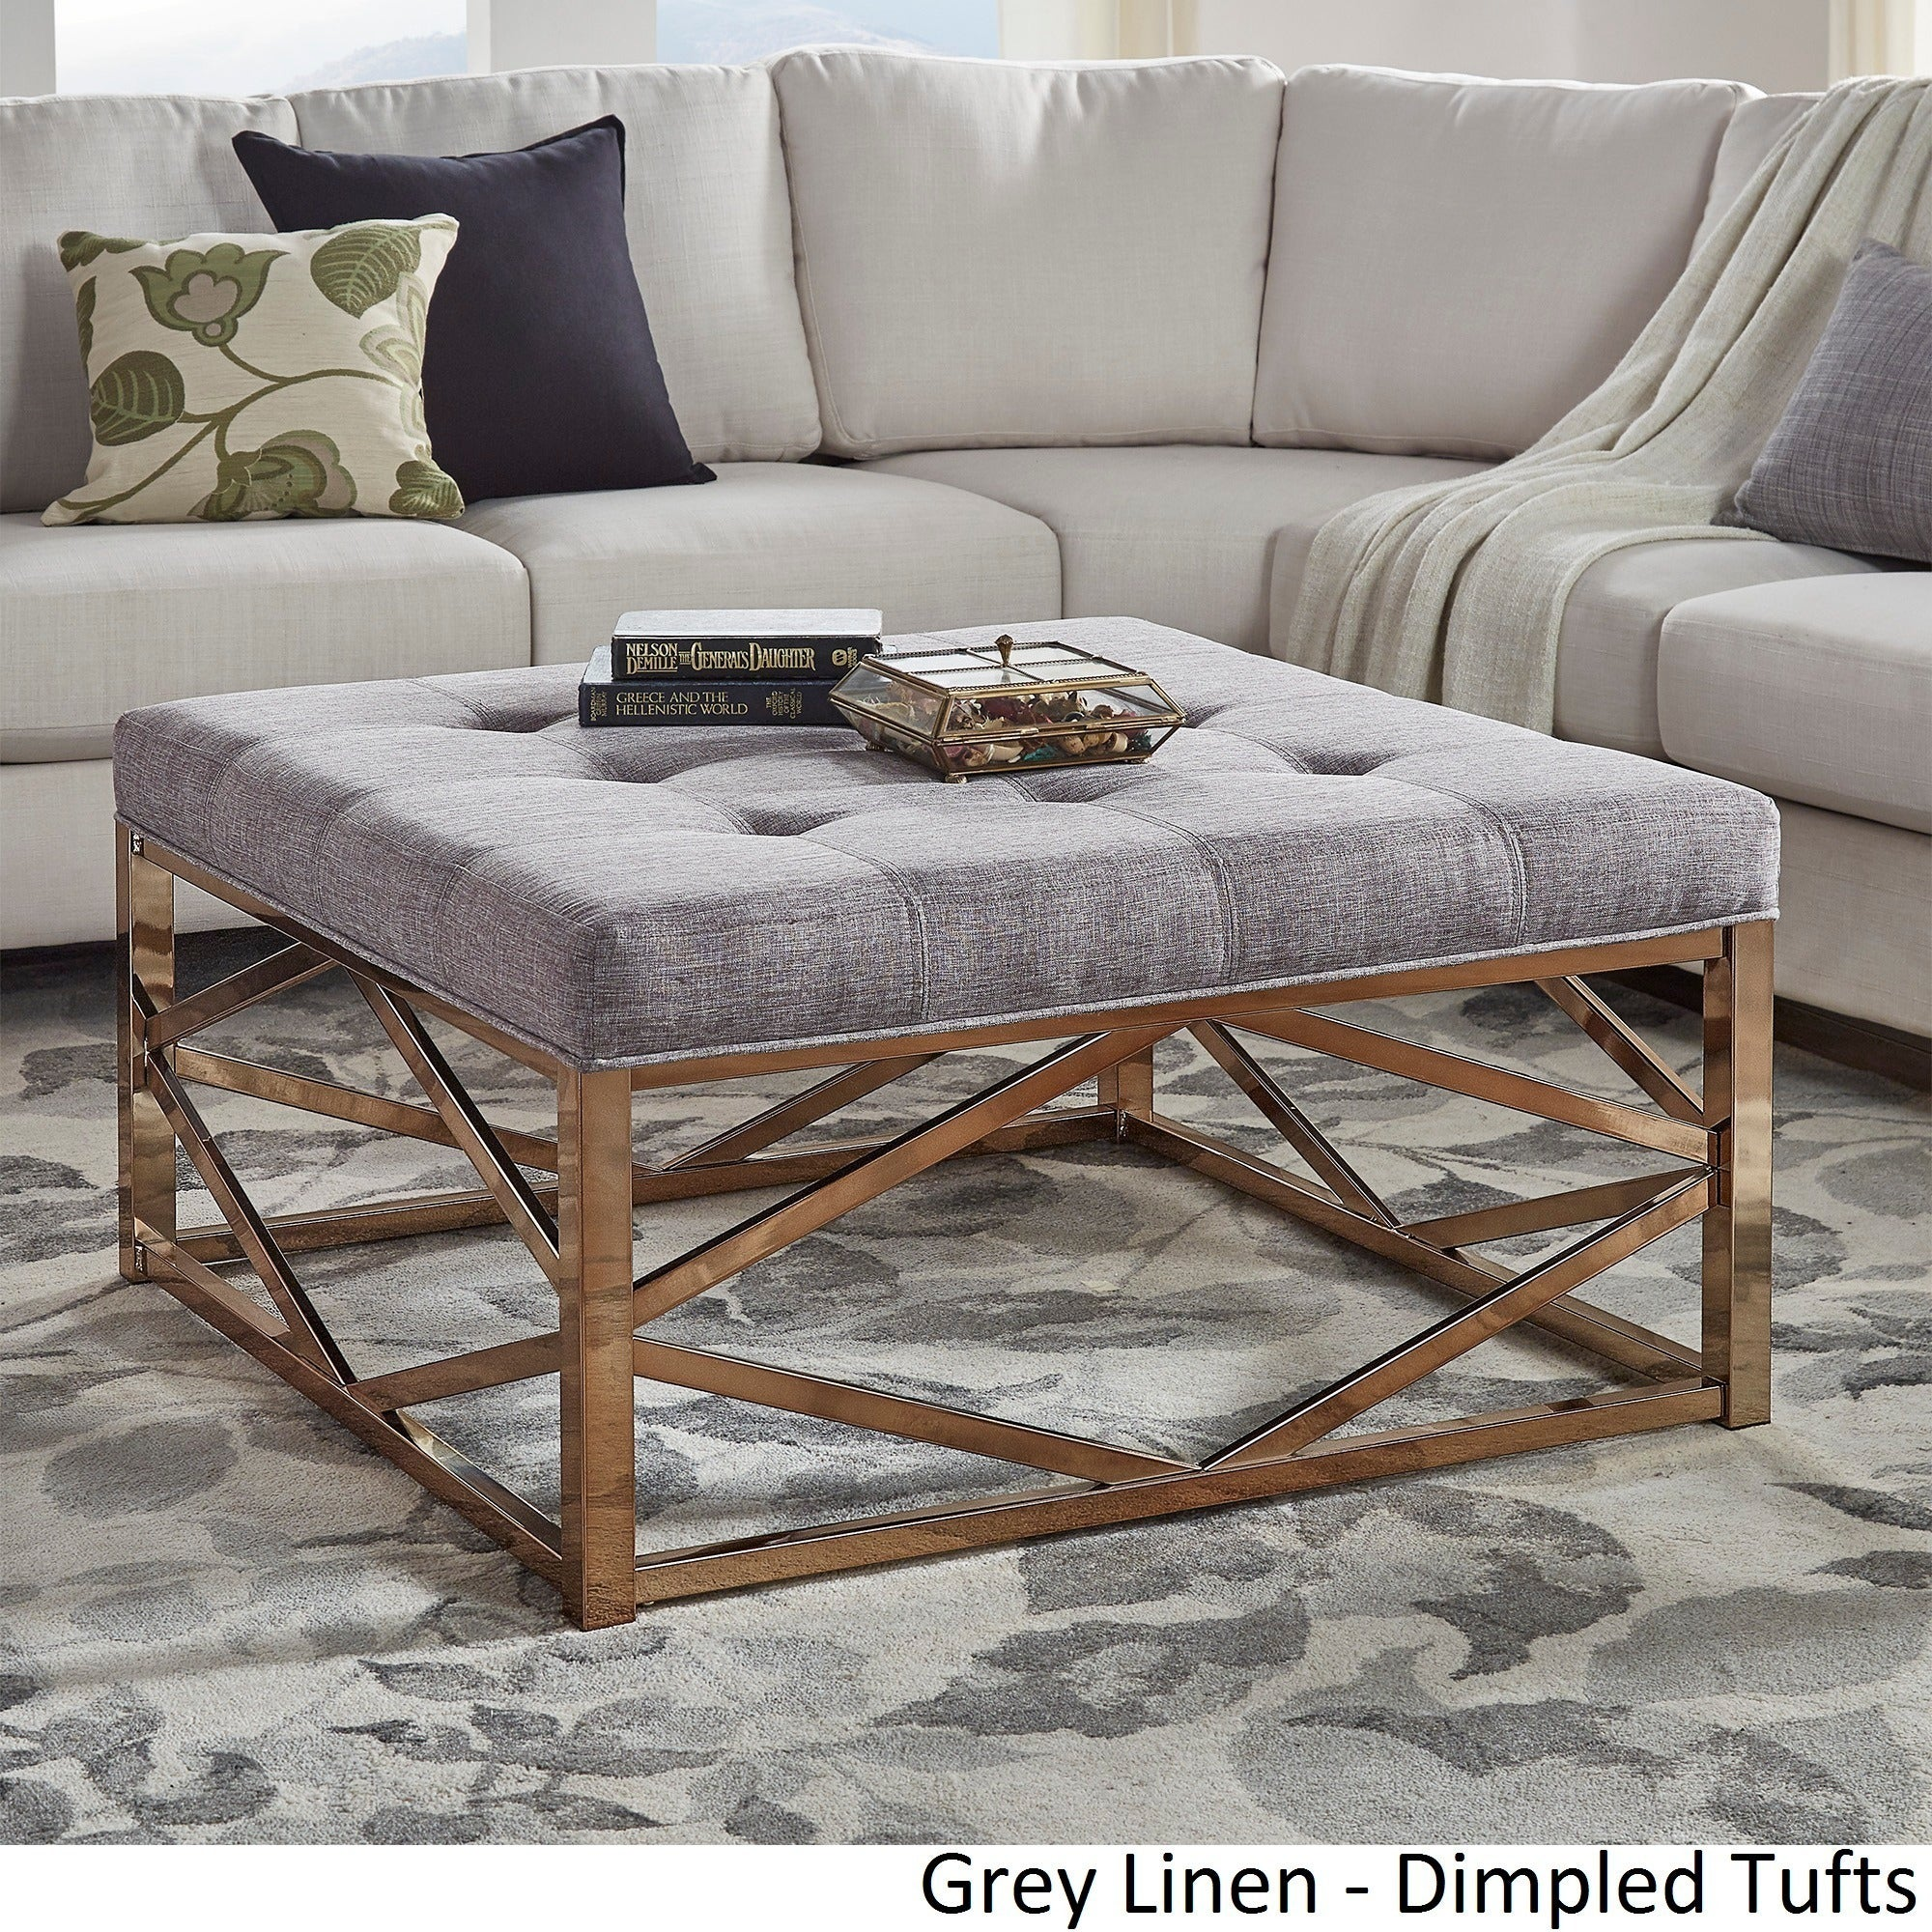 Solene Geometric Base Square Ottoman Coffee Table - Champagne Gold by  iNSPIRE Q Bold - Free Shipping Today - Overstock.com - 20158170